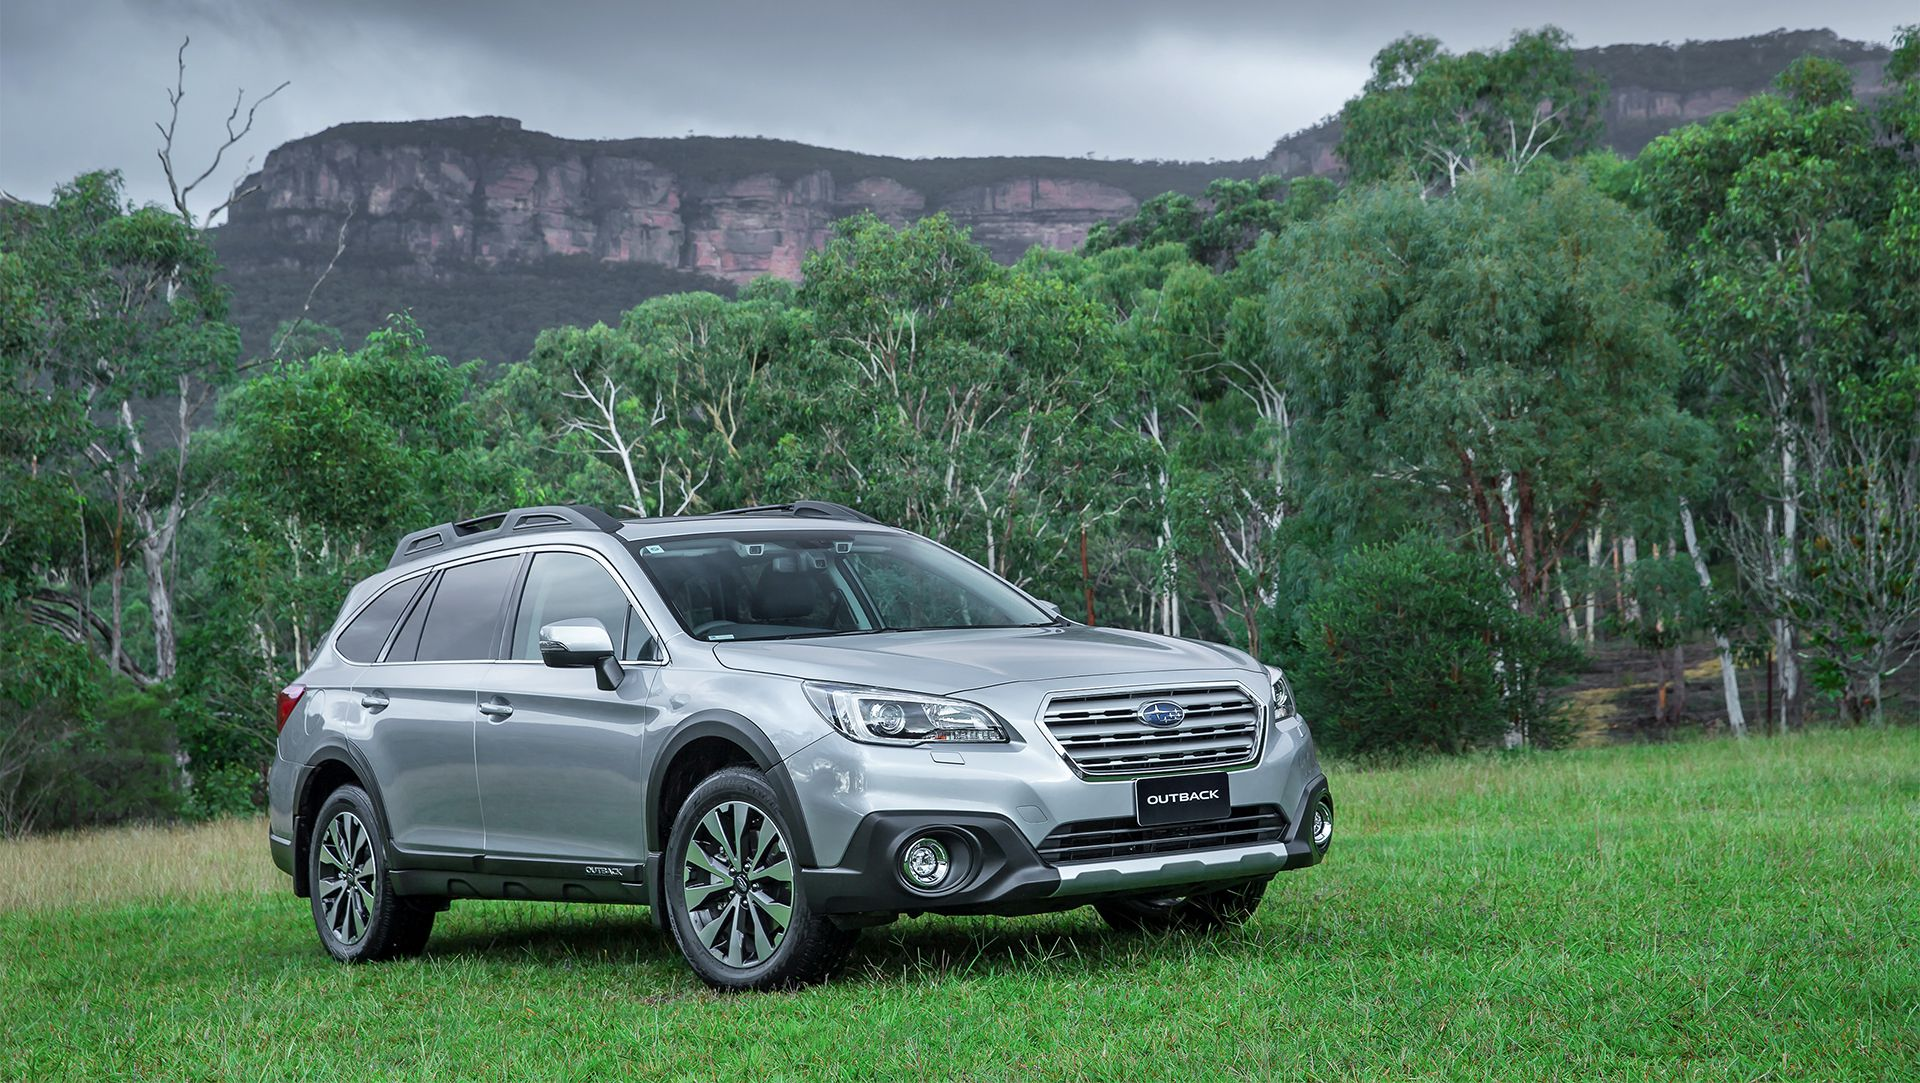 2016 subaru outback pricing and specifications in australia | auto